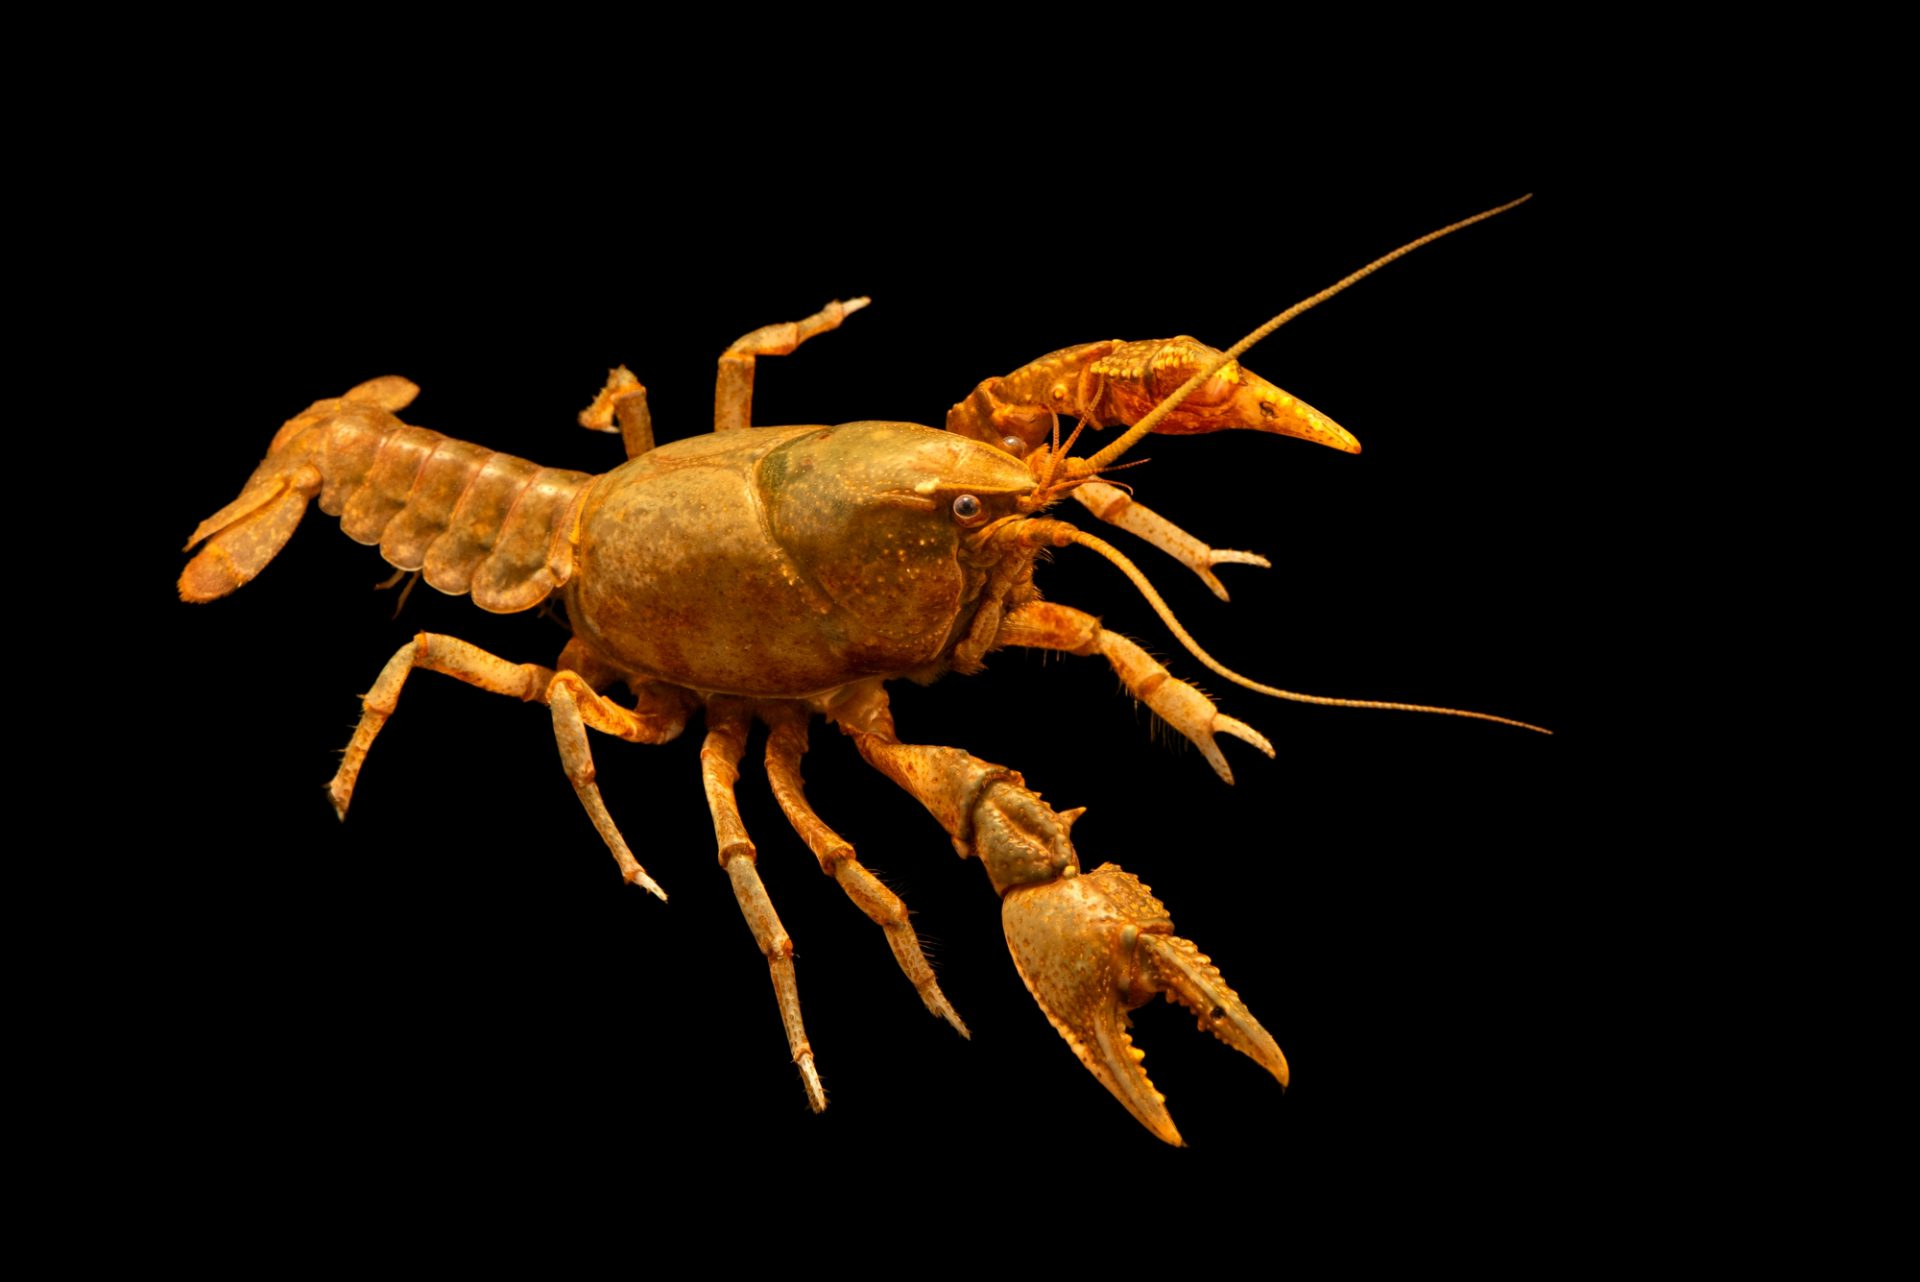 Photo: Sickle crayfish, Cambarus reduncus, at West Liberty University in West Liberty, WV. This specimen is from Raleigh, NC.